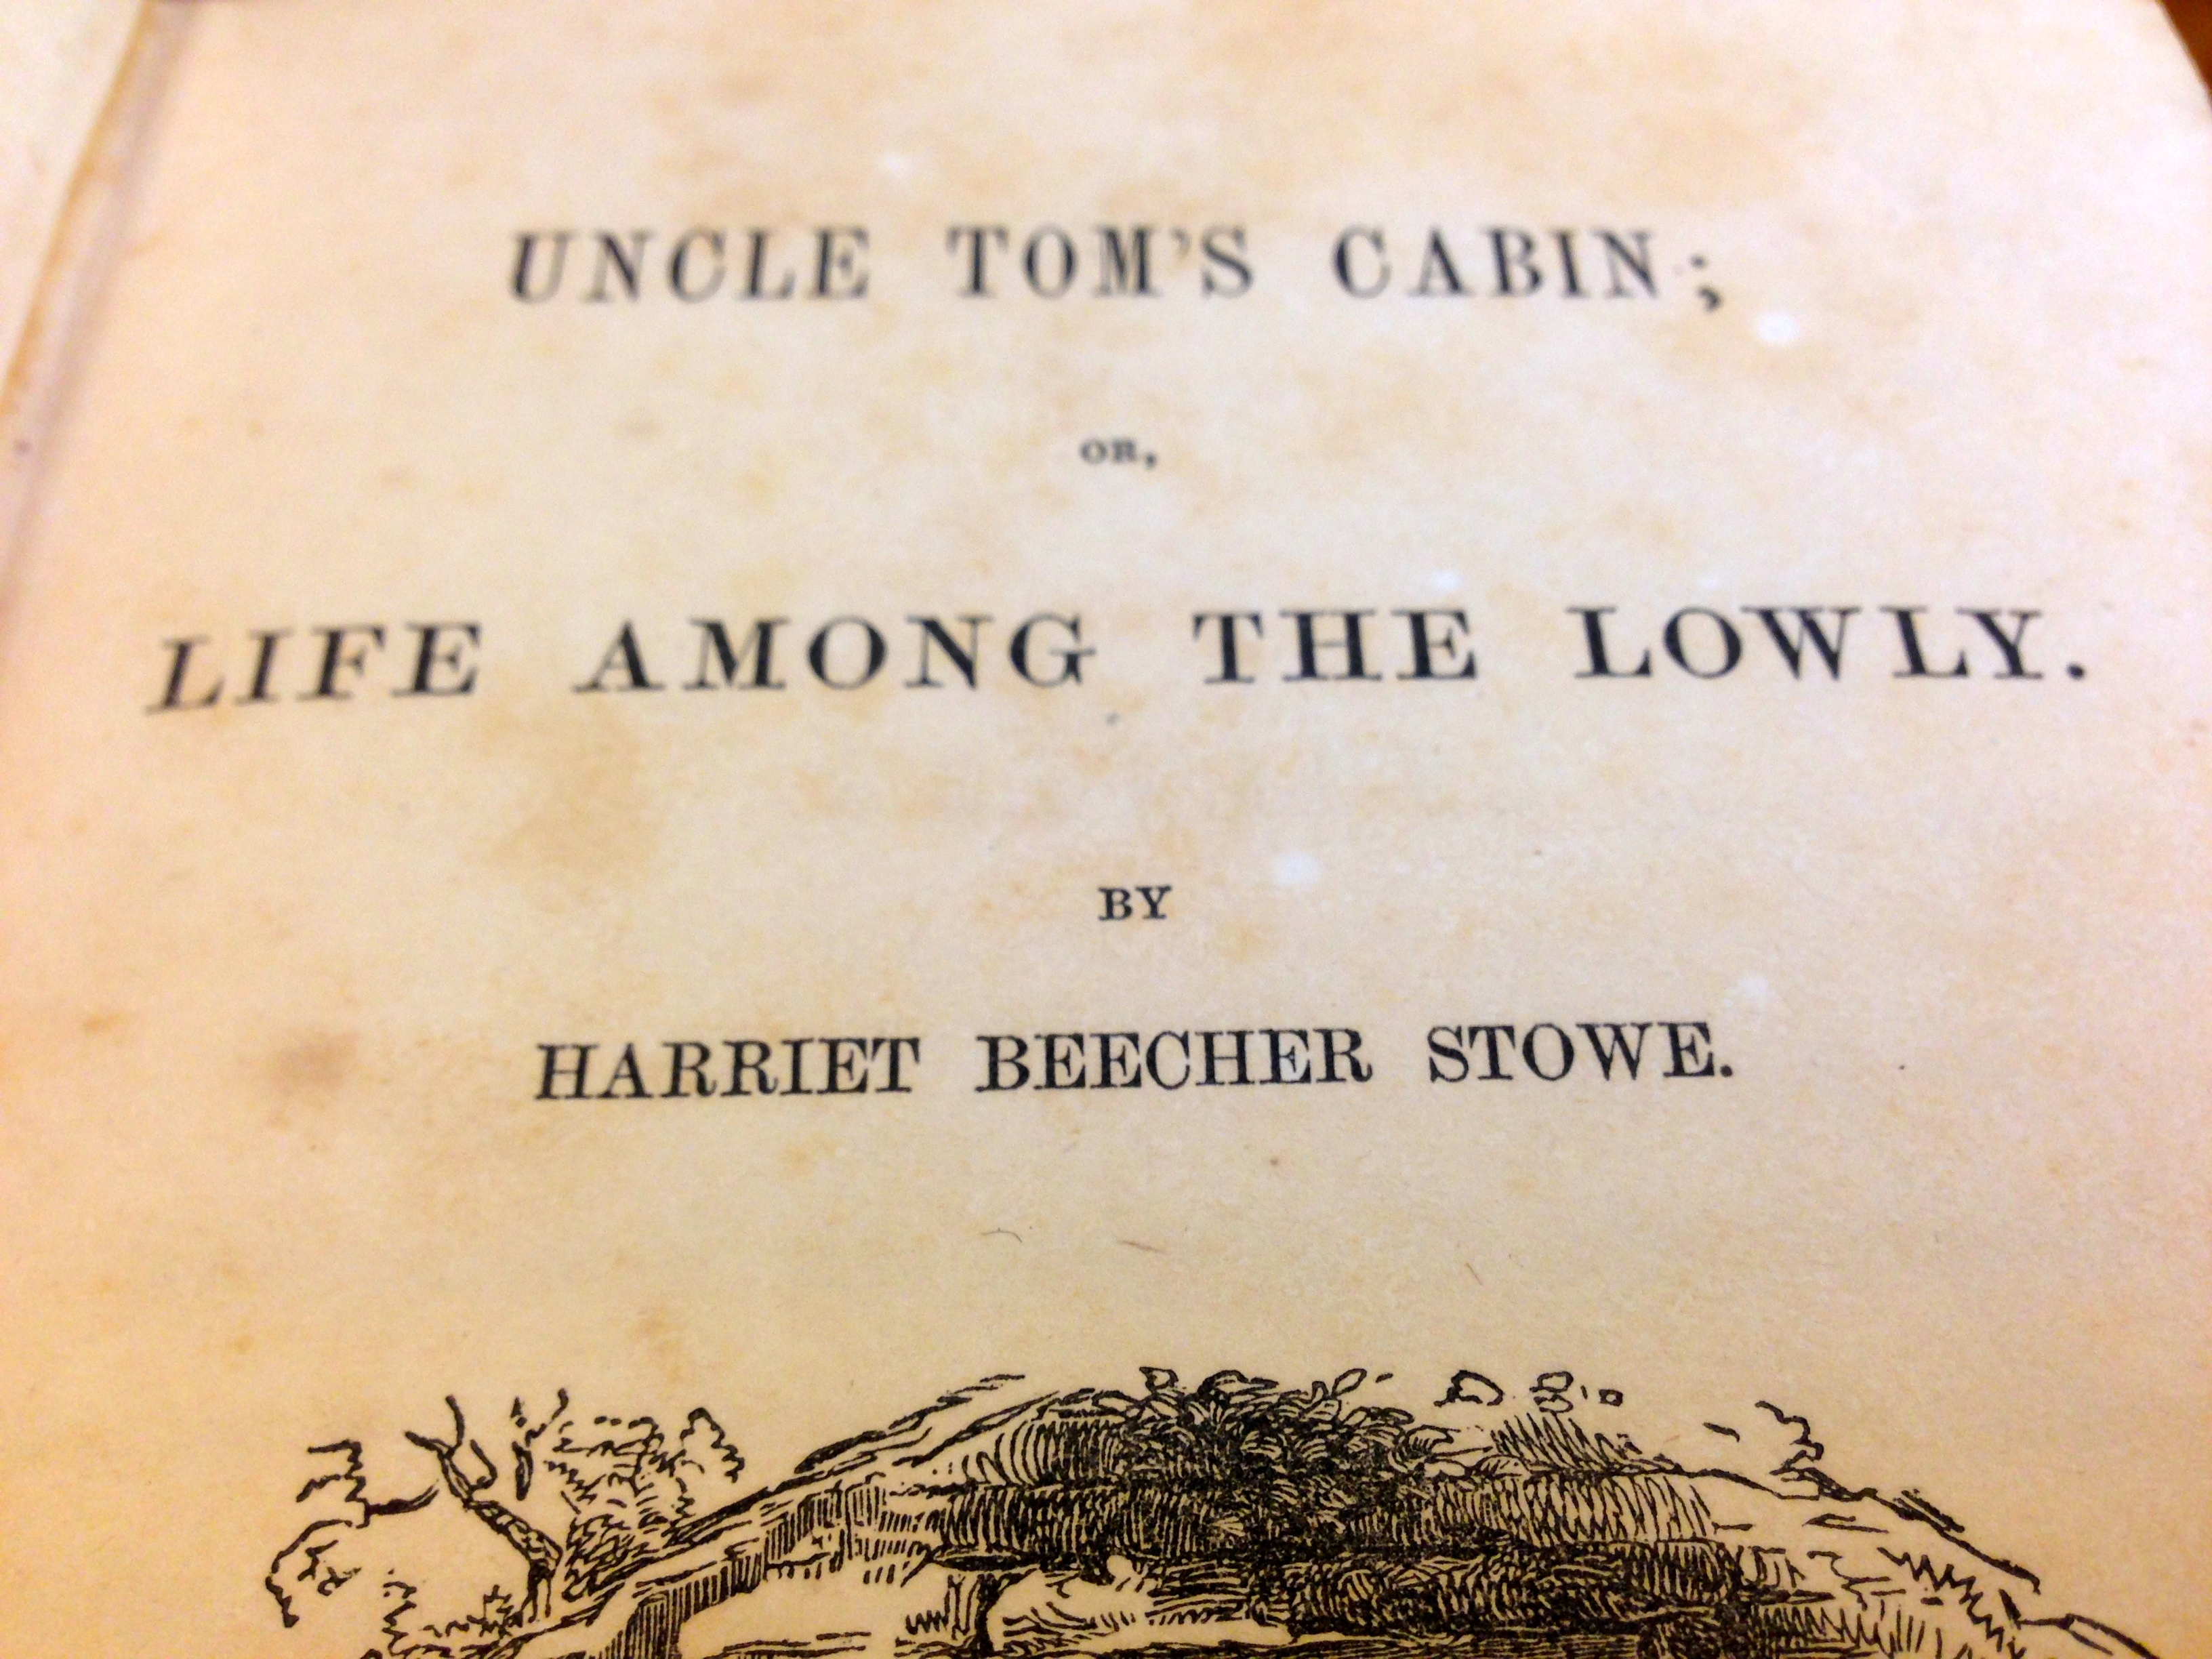 Title page detail of Uncle Tom's Cabin. ( PS2954 .U5 1852b v.1-2. Clifton Waller Barrett Library of American Literature. Photograph by Emily Caldwell)